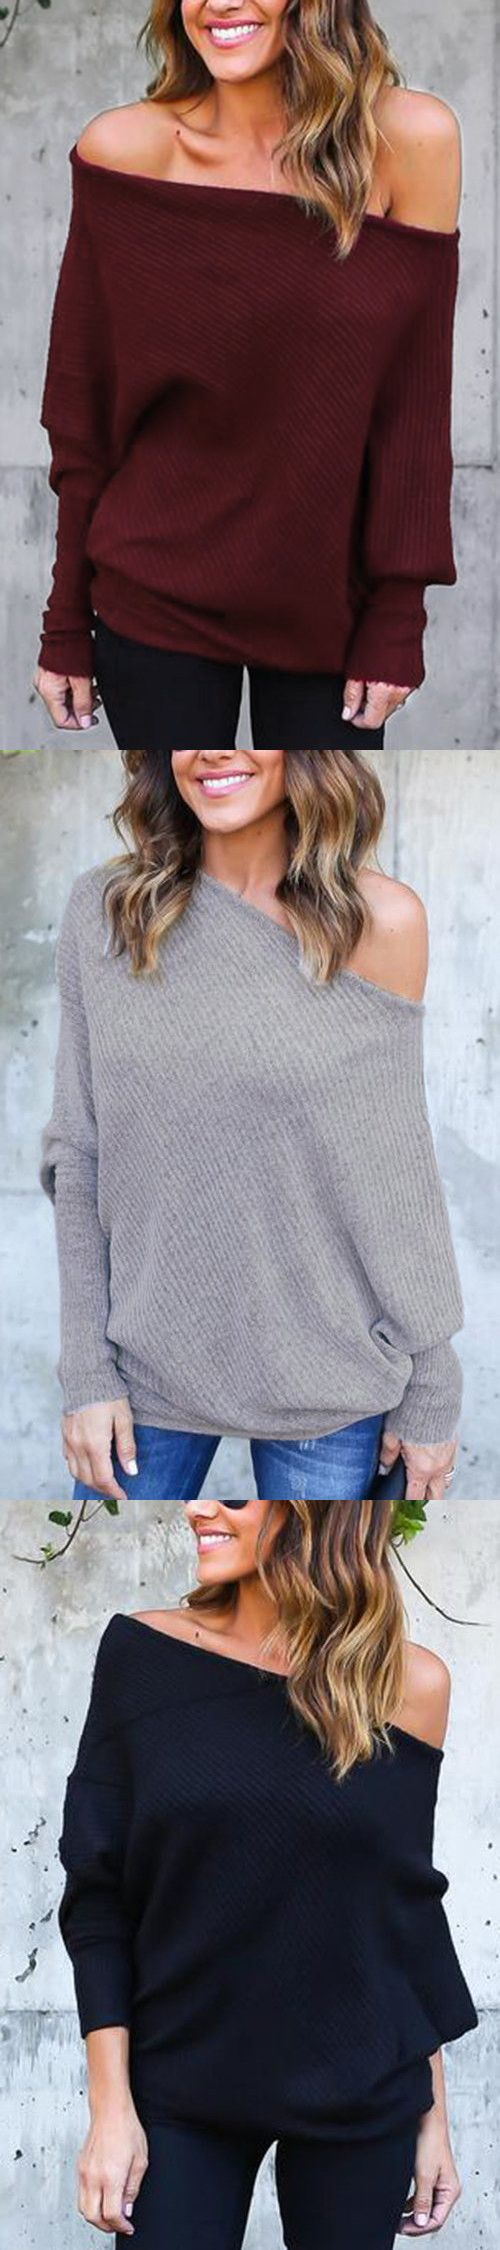 Lightweight, Off-Shoulder, Long Sleeves - i need all of these all ...